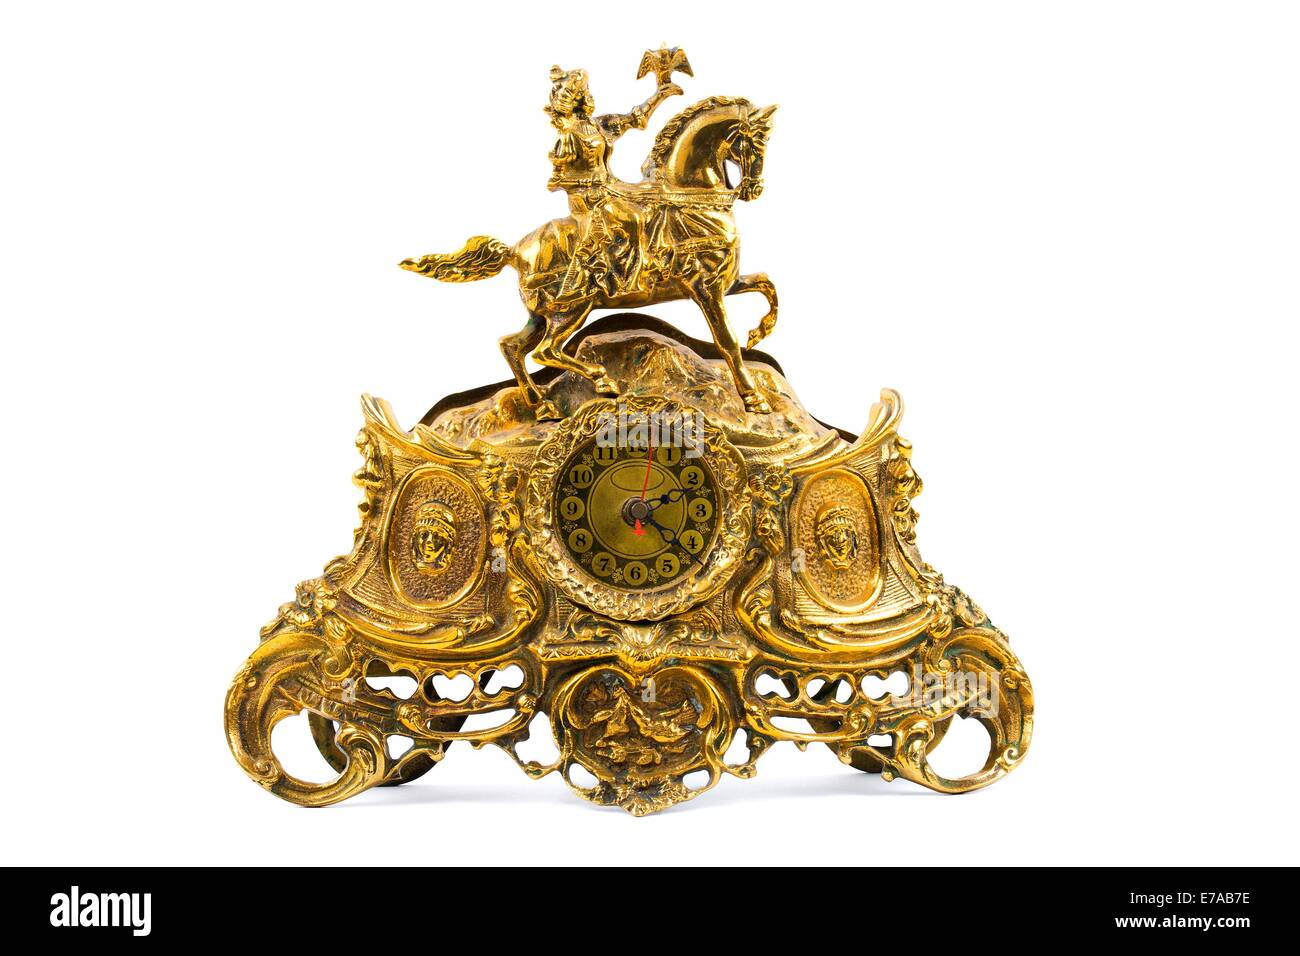 Old golden clock - Stock Image